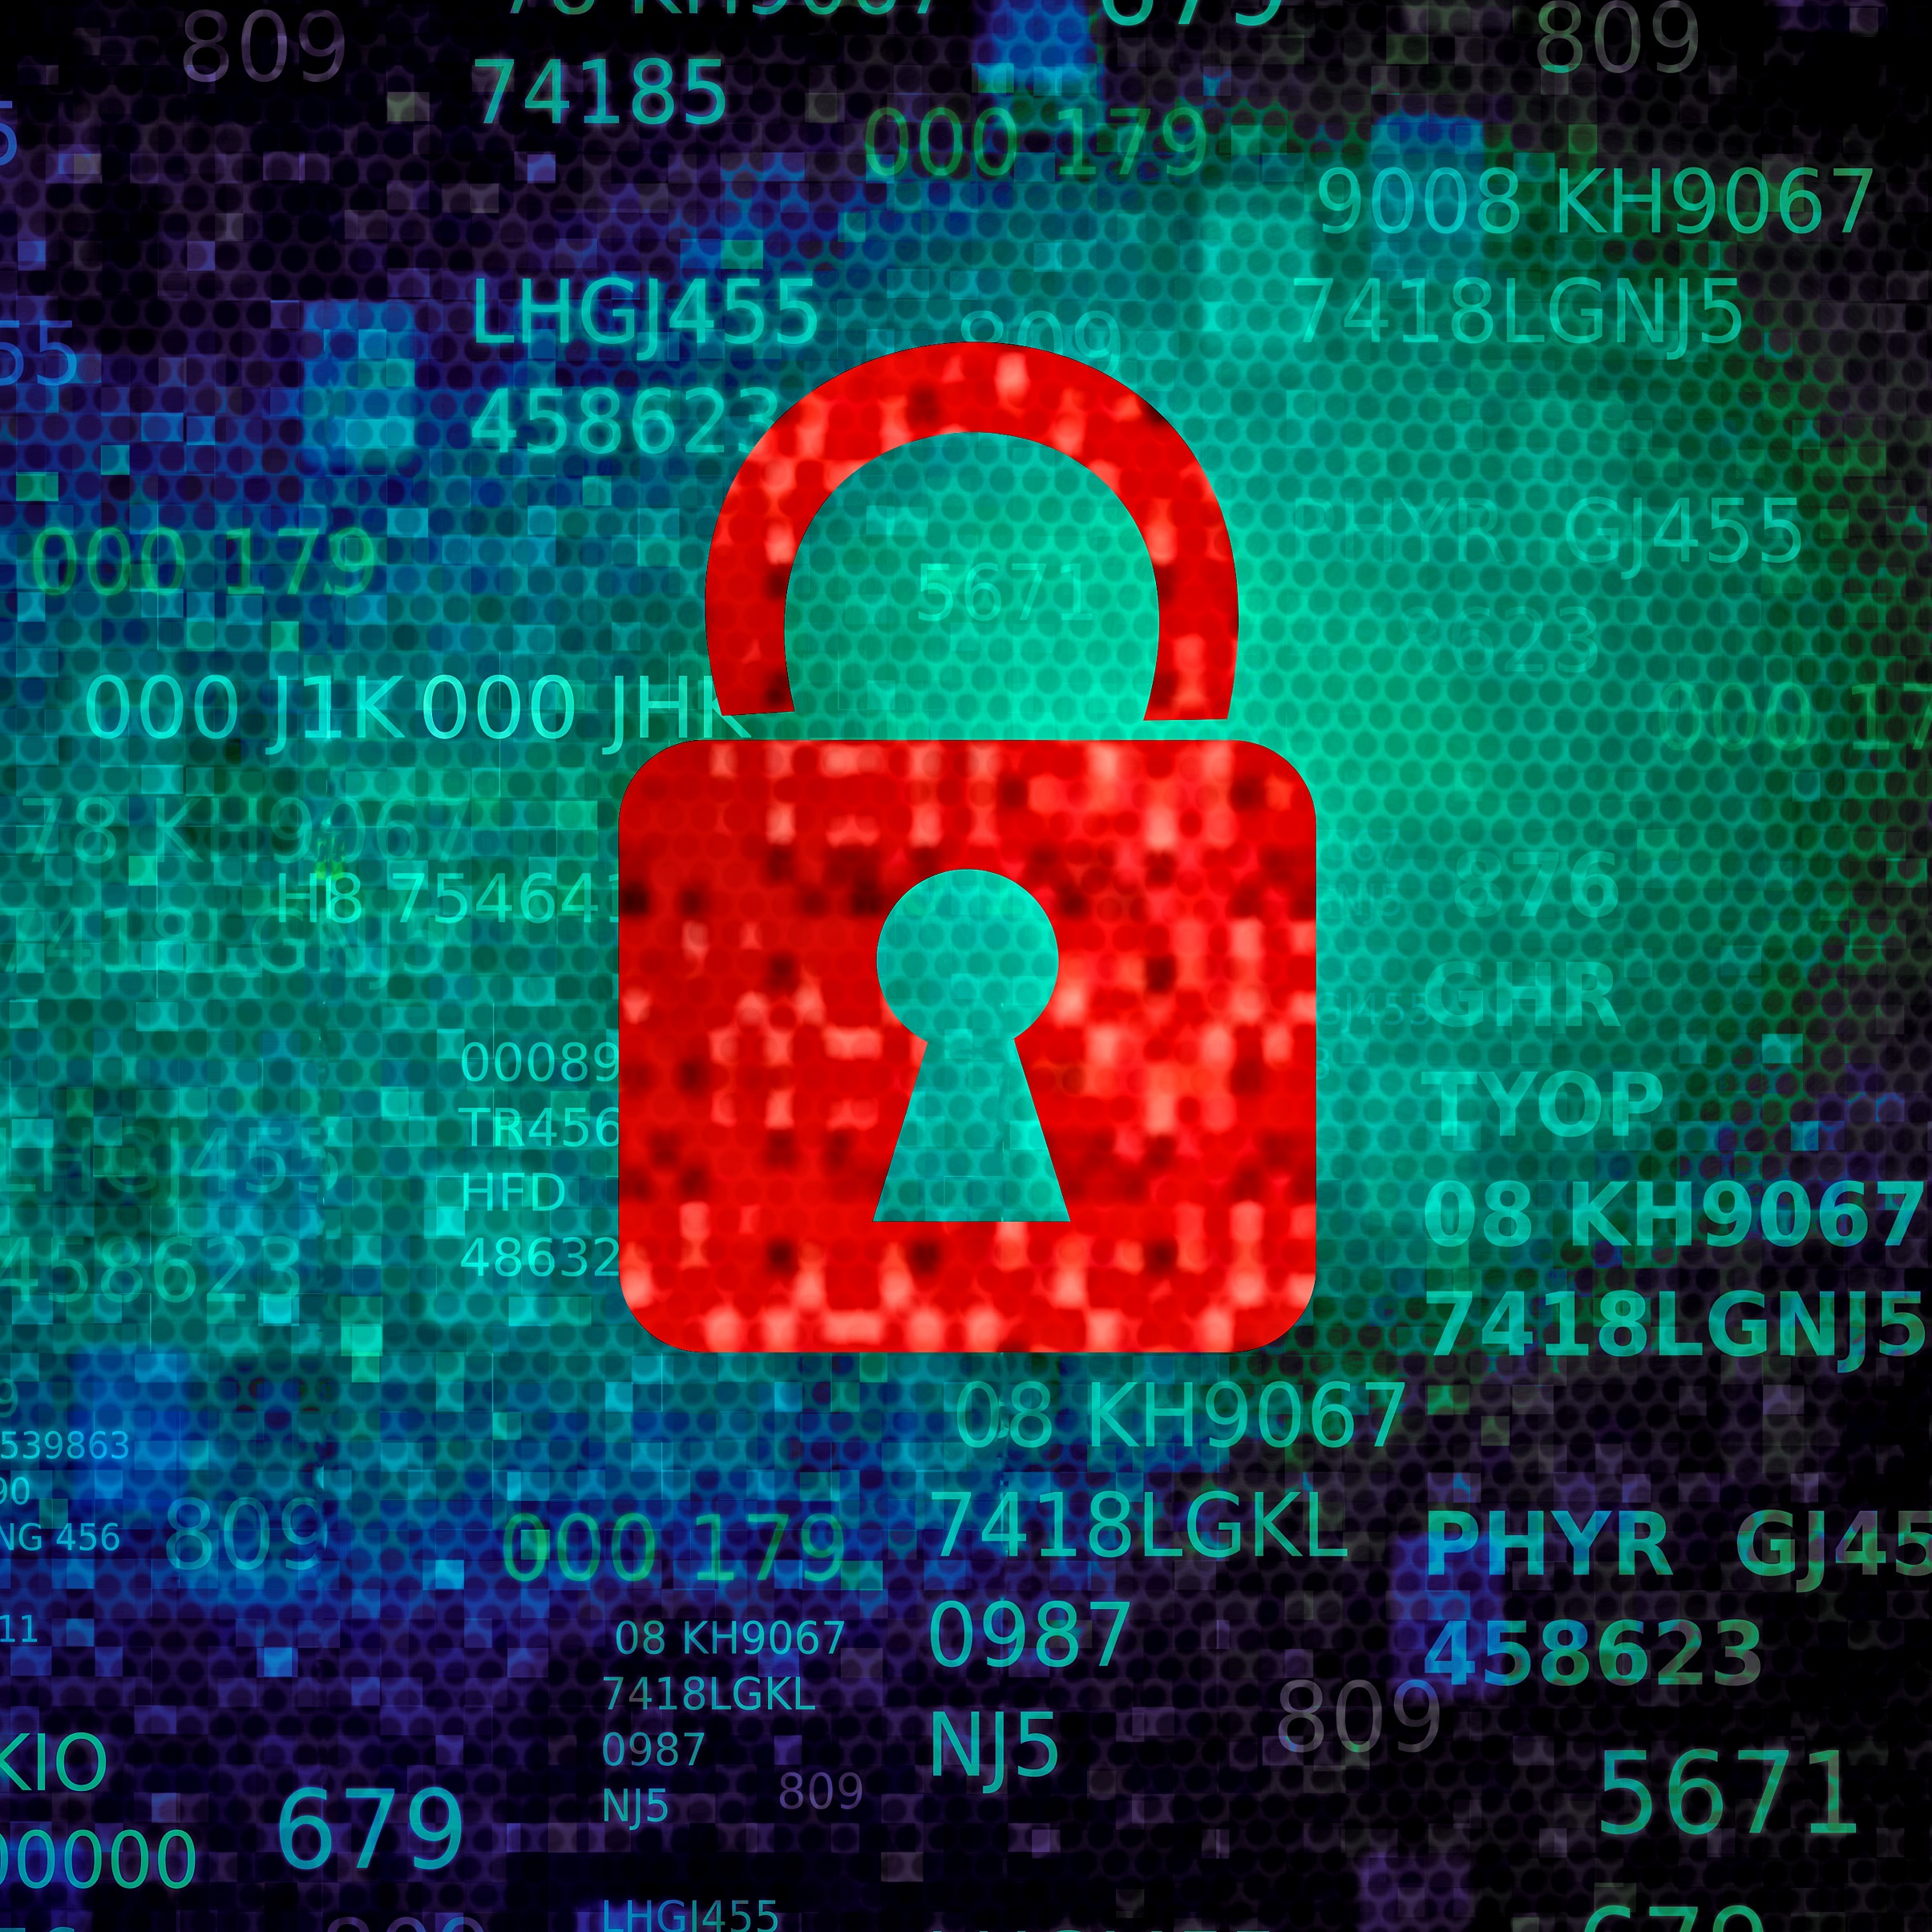 stockvault-cyber-security-concept-with-red-padlock-on-data-screen180401.jpg